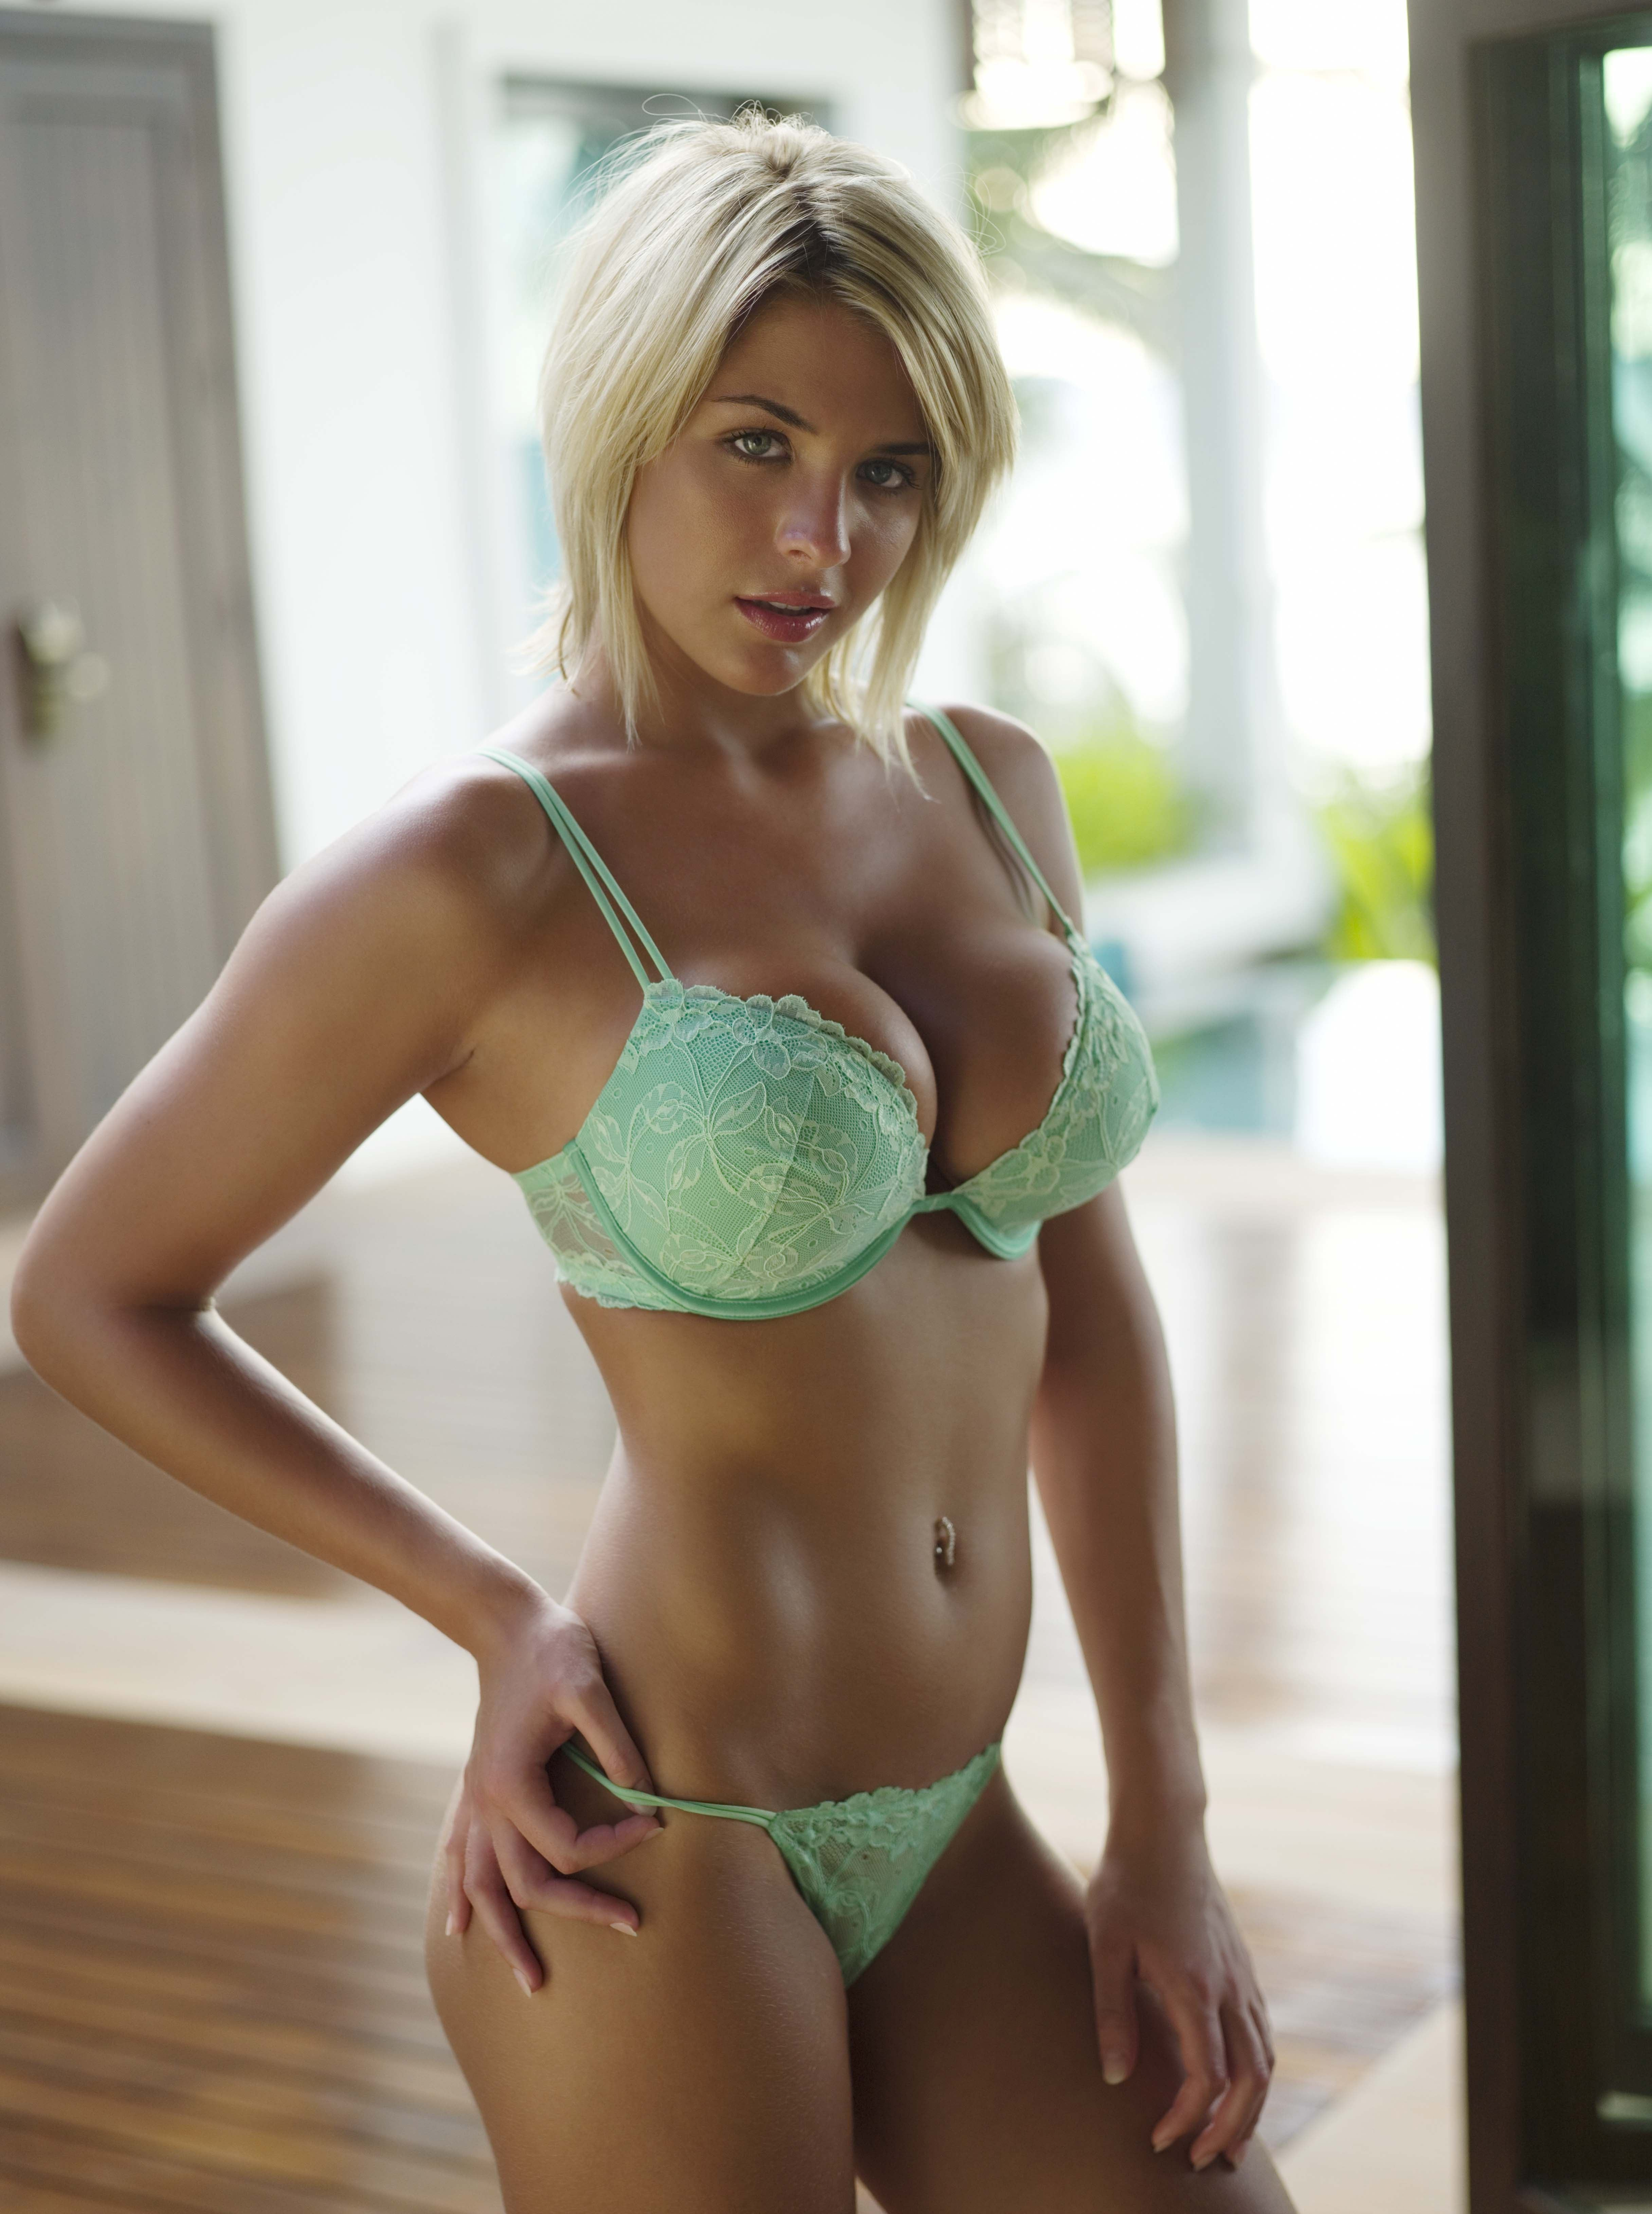 Big tits with short blond hair Short Hair Blonde With Big Boobs Naked Photo